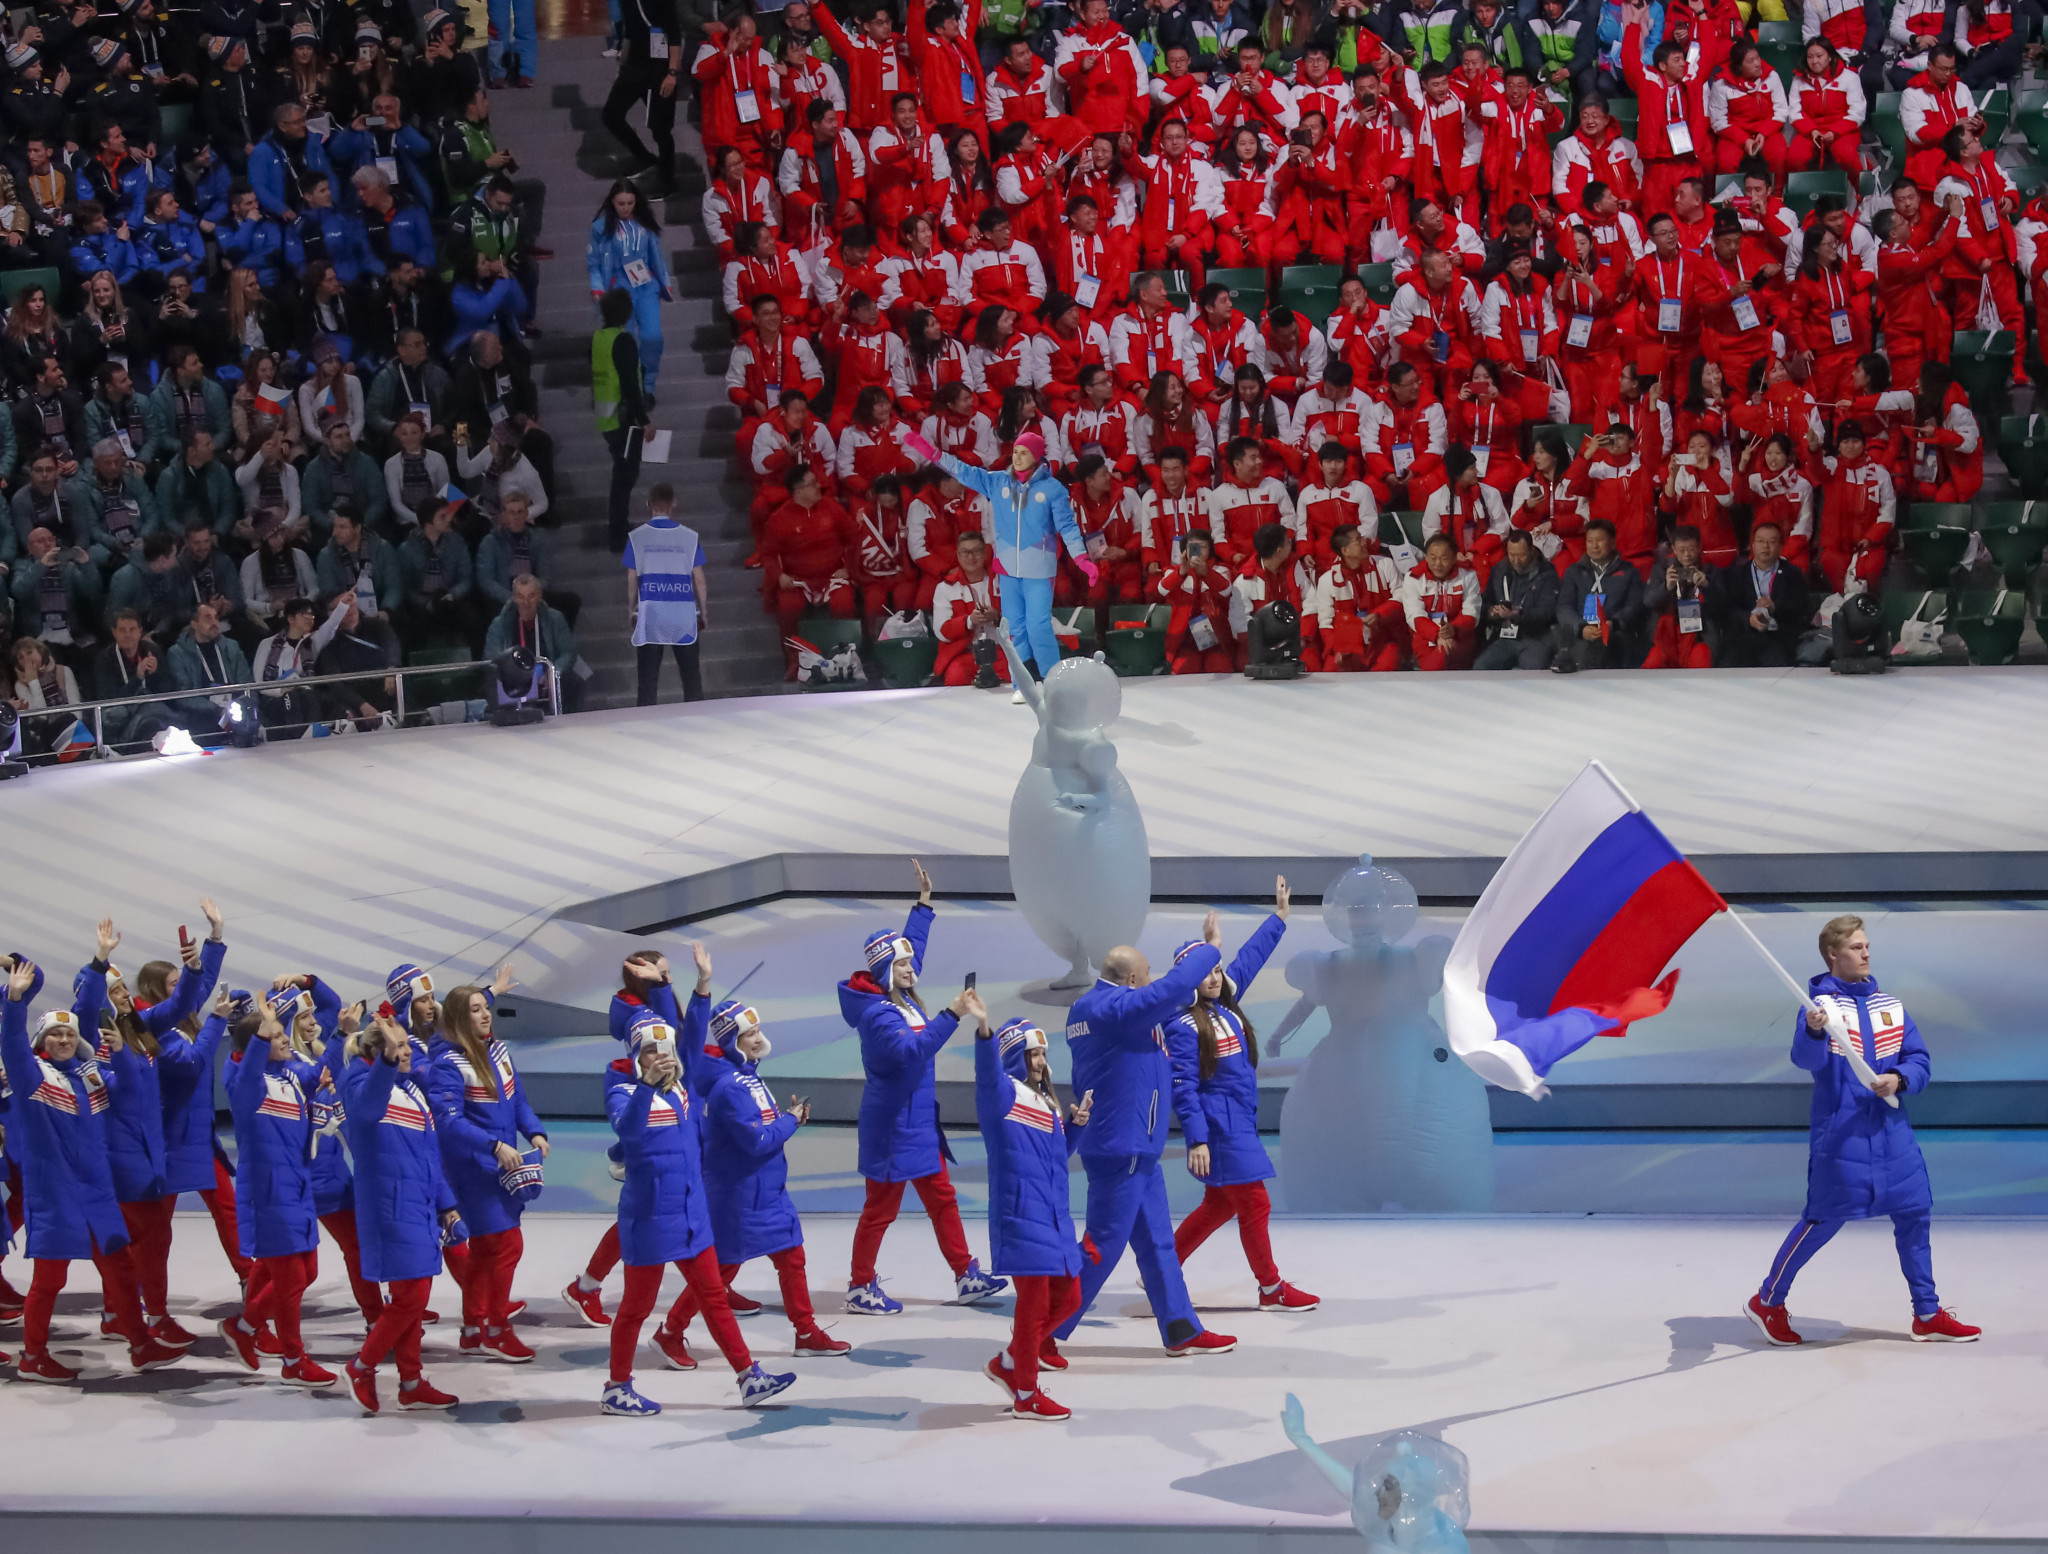 Krasnoyarsk 2019: Opening Ceremony of Winter Universiade